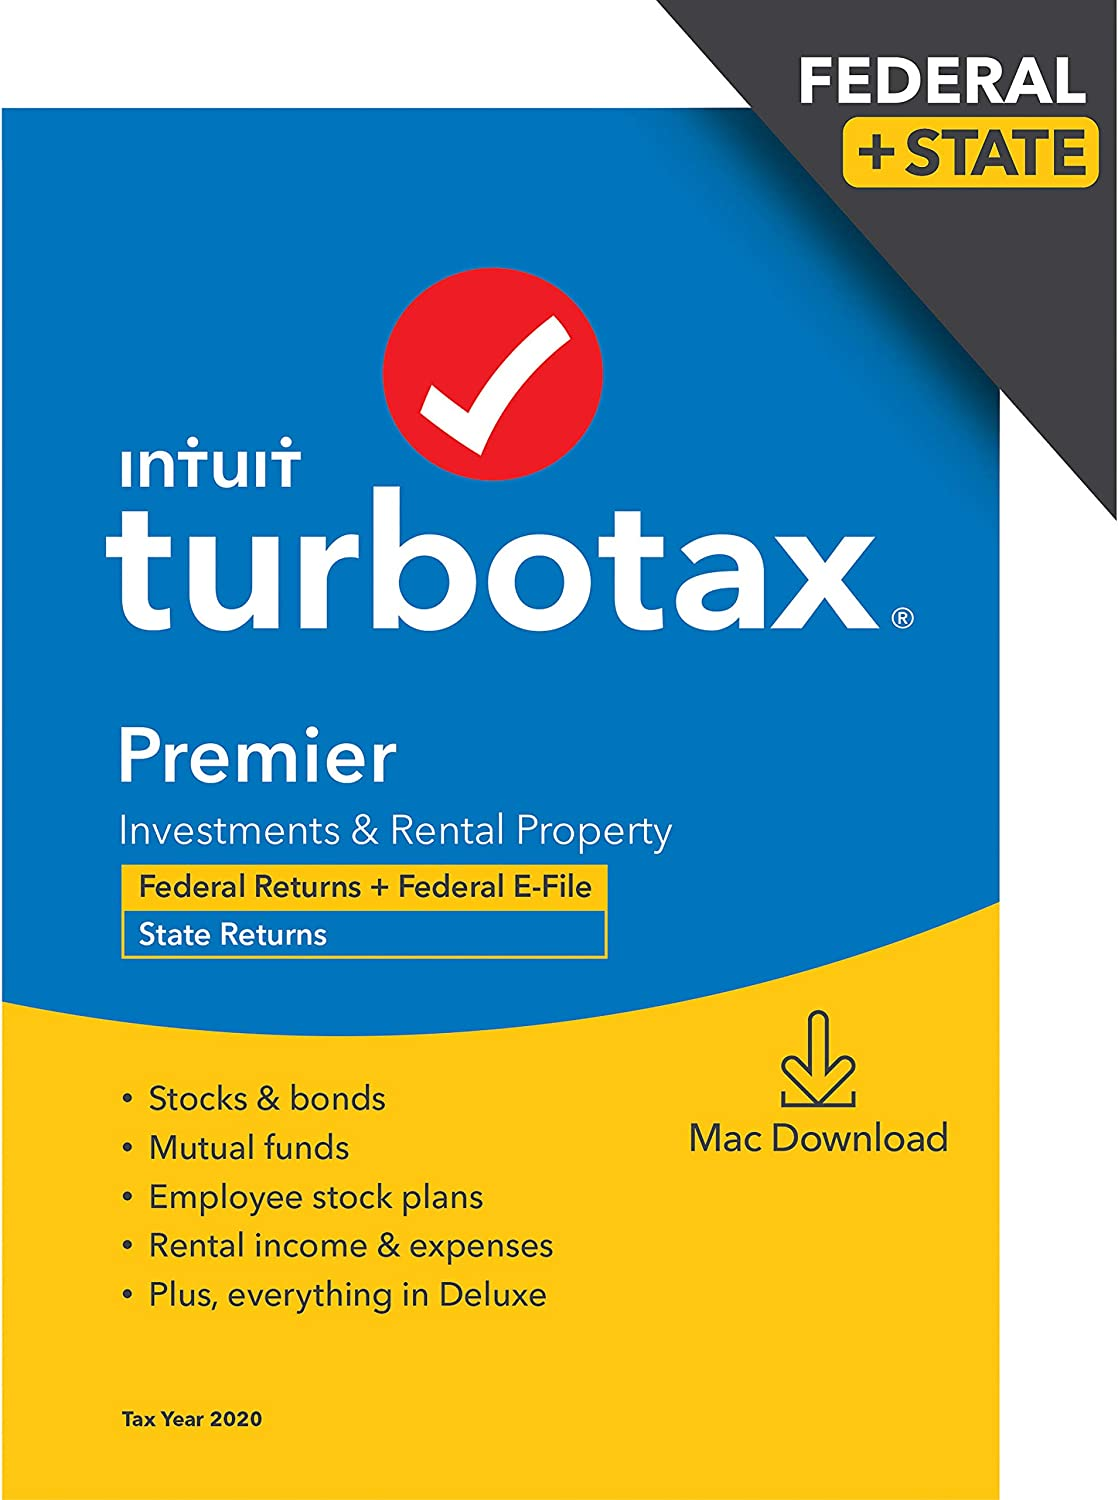 TurboTax Premier 2020 Desktop Tax Software, Federal and State Returns + Federal E-file (State E-file Additional) [Amazon Exclusive] [MAC Download]